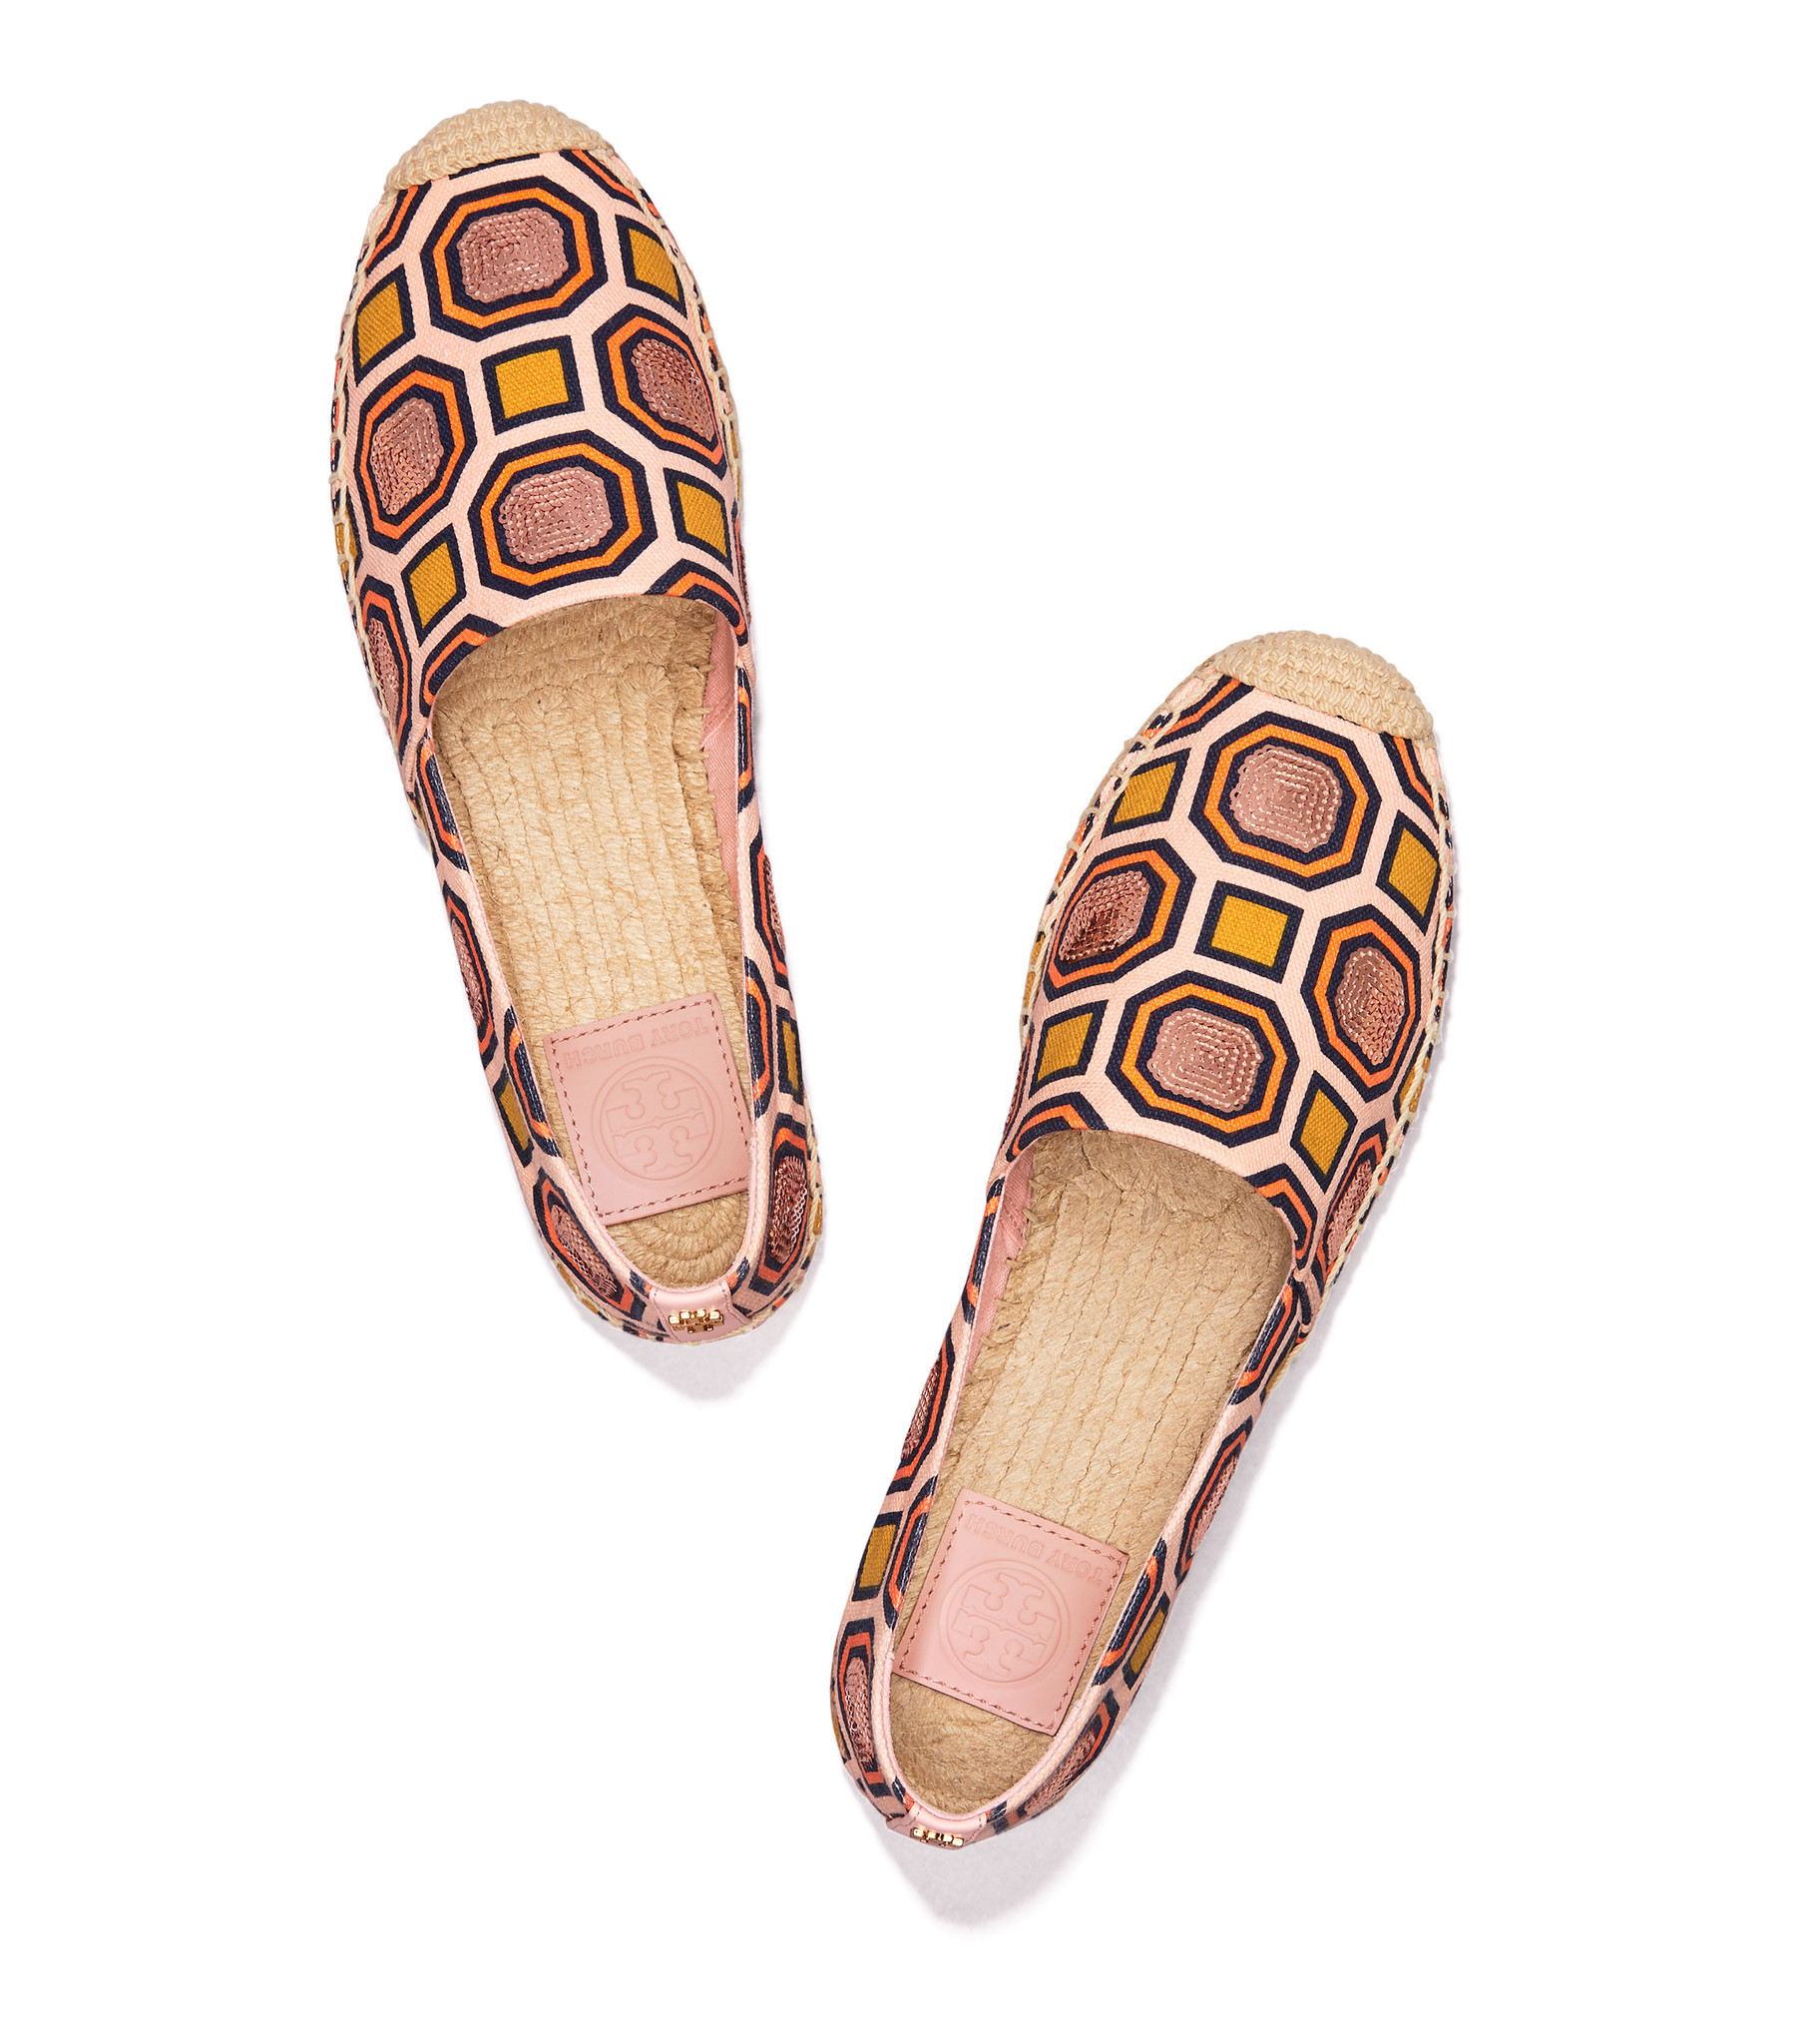 Tory Burch's Cecily Embellished Espadrilles.